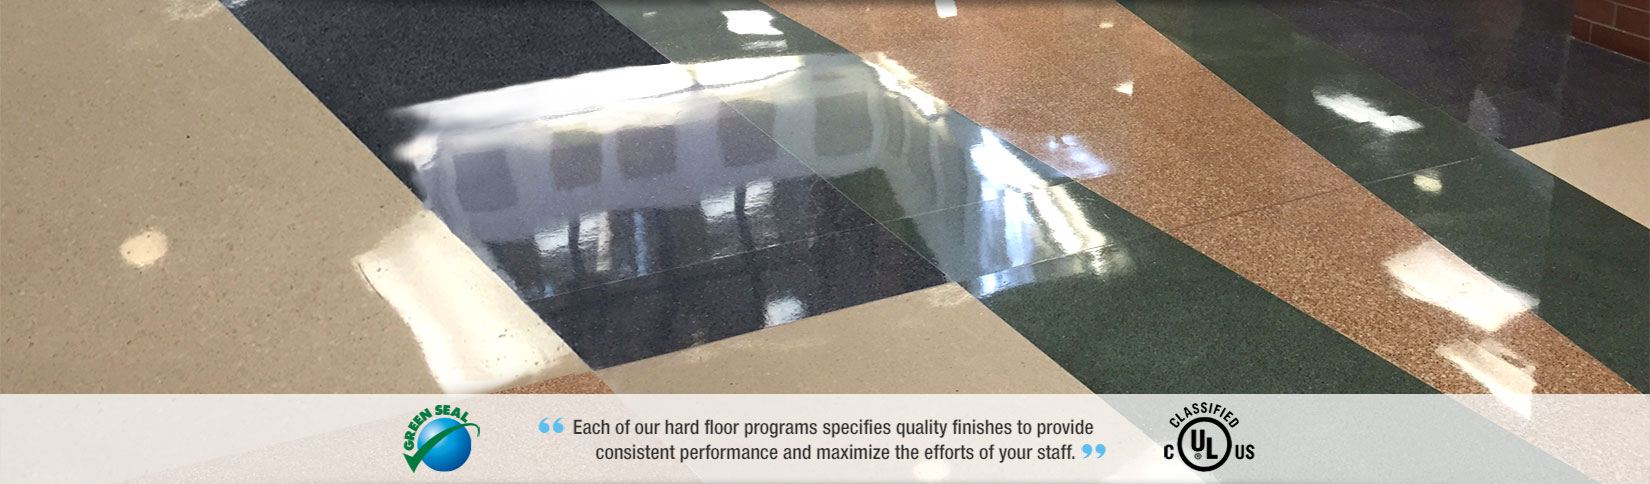 Each of our hard floor programs specifies quality finishes to provide consistent performance and maximize the efforts of your staff.